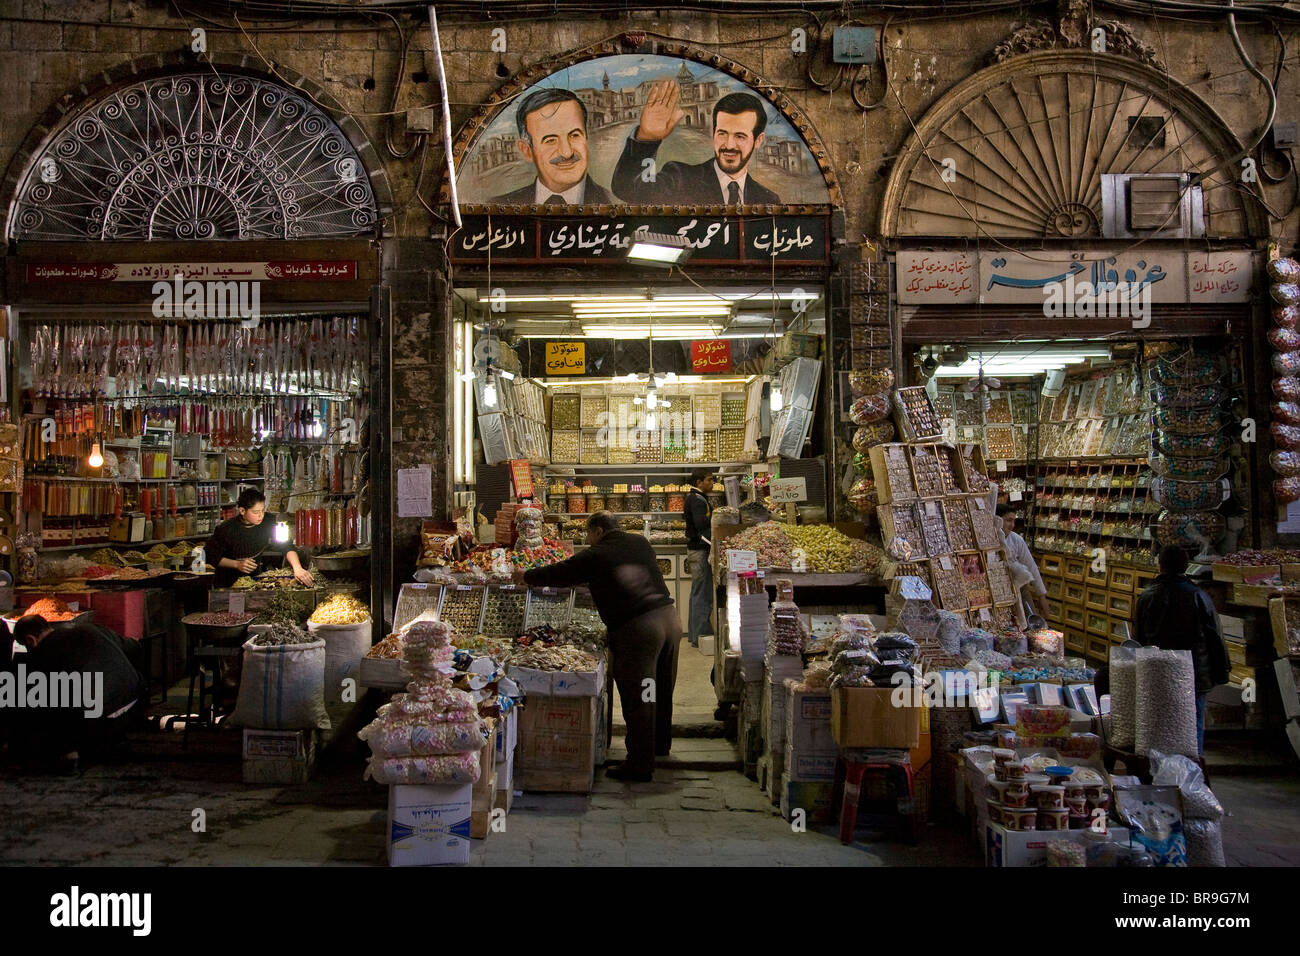 Painting of Basil and Hafez al-Assad in the Souk in Damascus Syria. - Stock Image